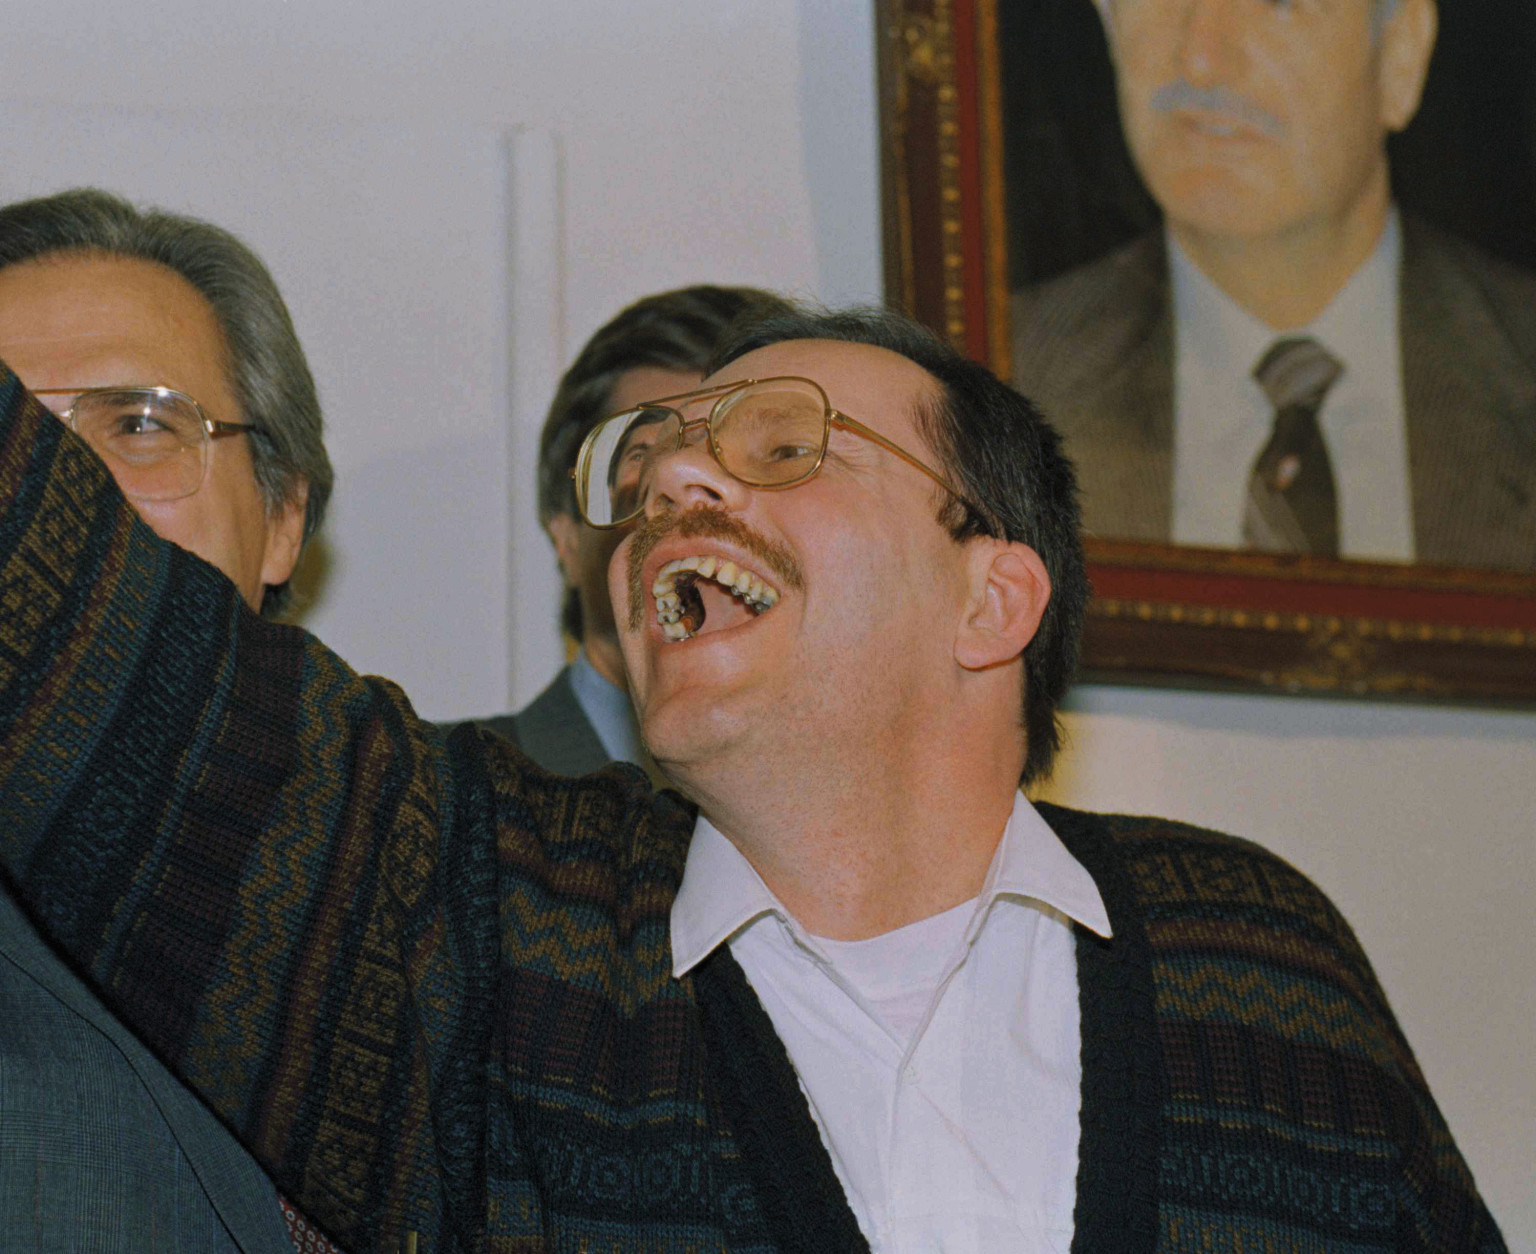 Terry Anderson, chief Middle East correspondent for the Associated Press, waves as he enters a news conference in the Syrian Foreign Ministry in Damascus, Wednesday, Dec. 4, 1991. Anderson was held captive for nearly seven years before being released on Wednesday. (AP Photo/Santiago Lyon)